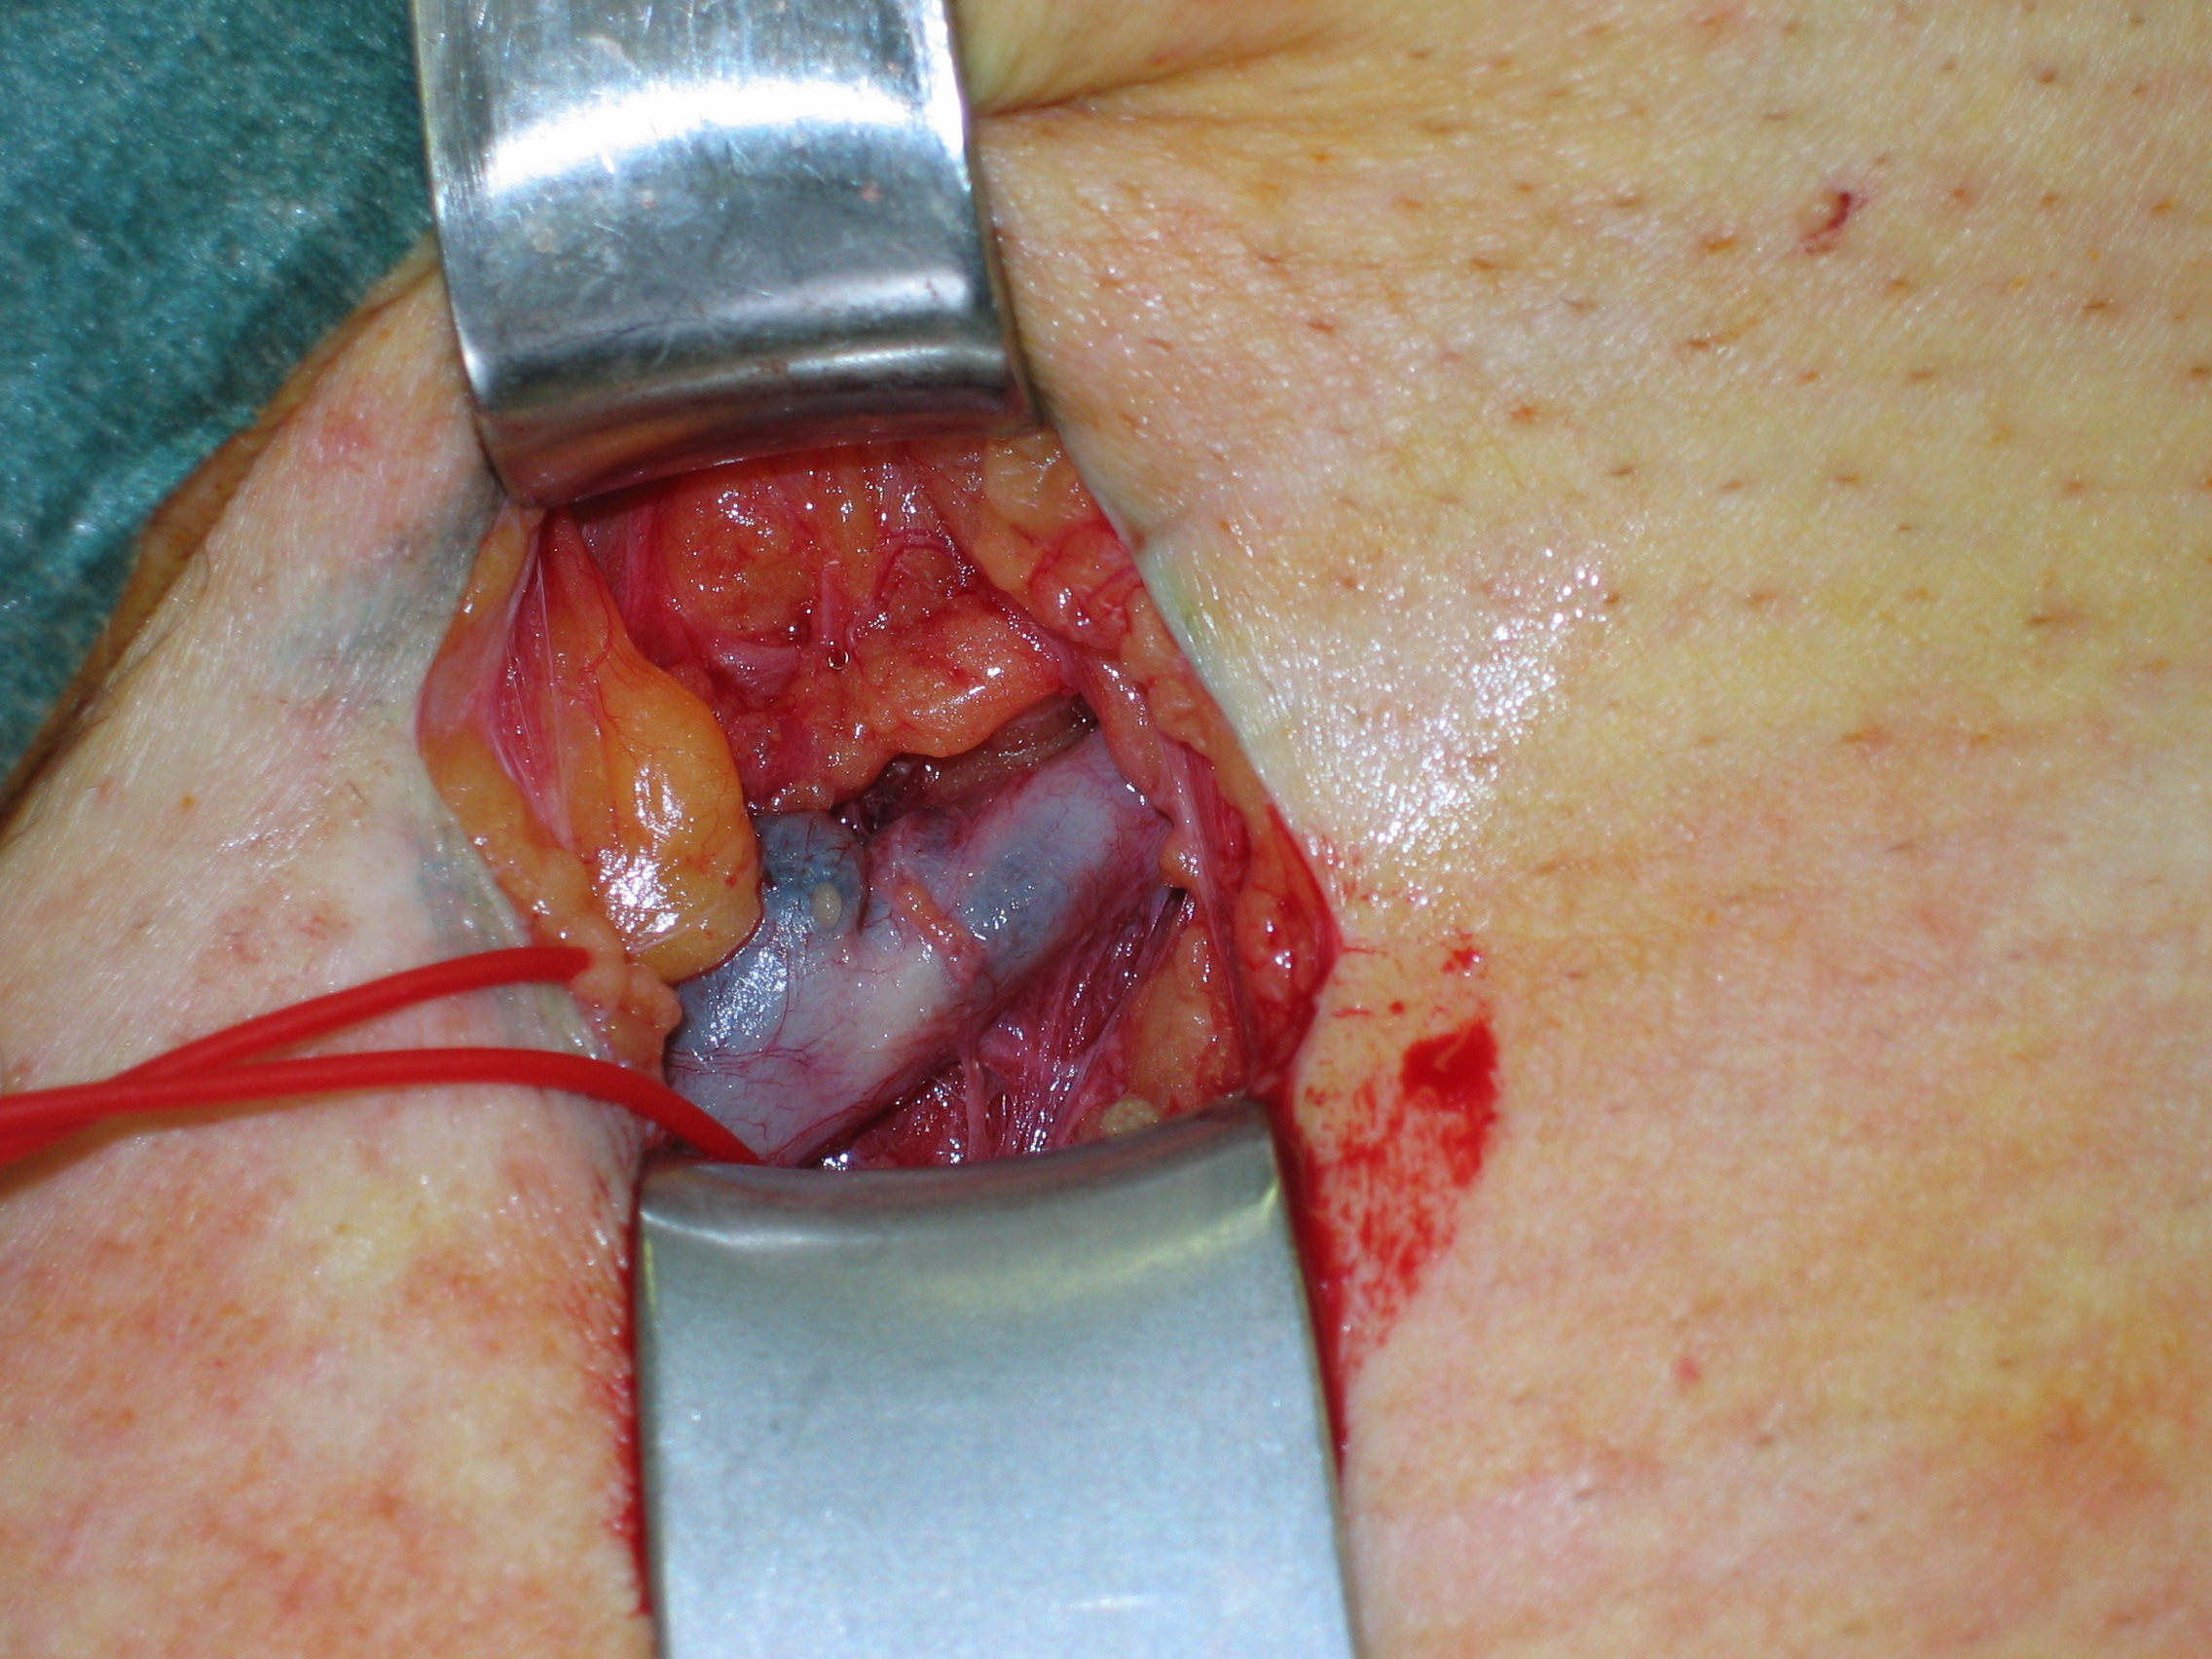 pictures of phlebitis #11